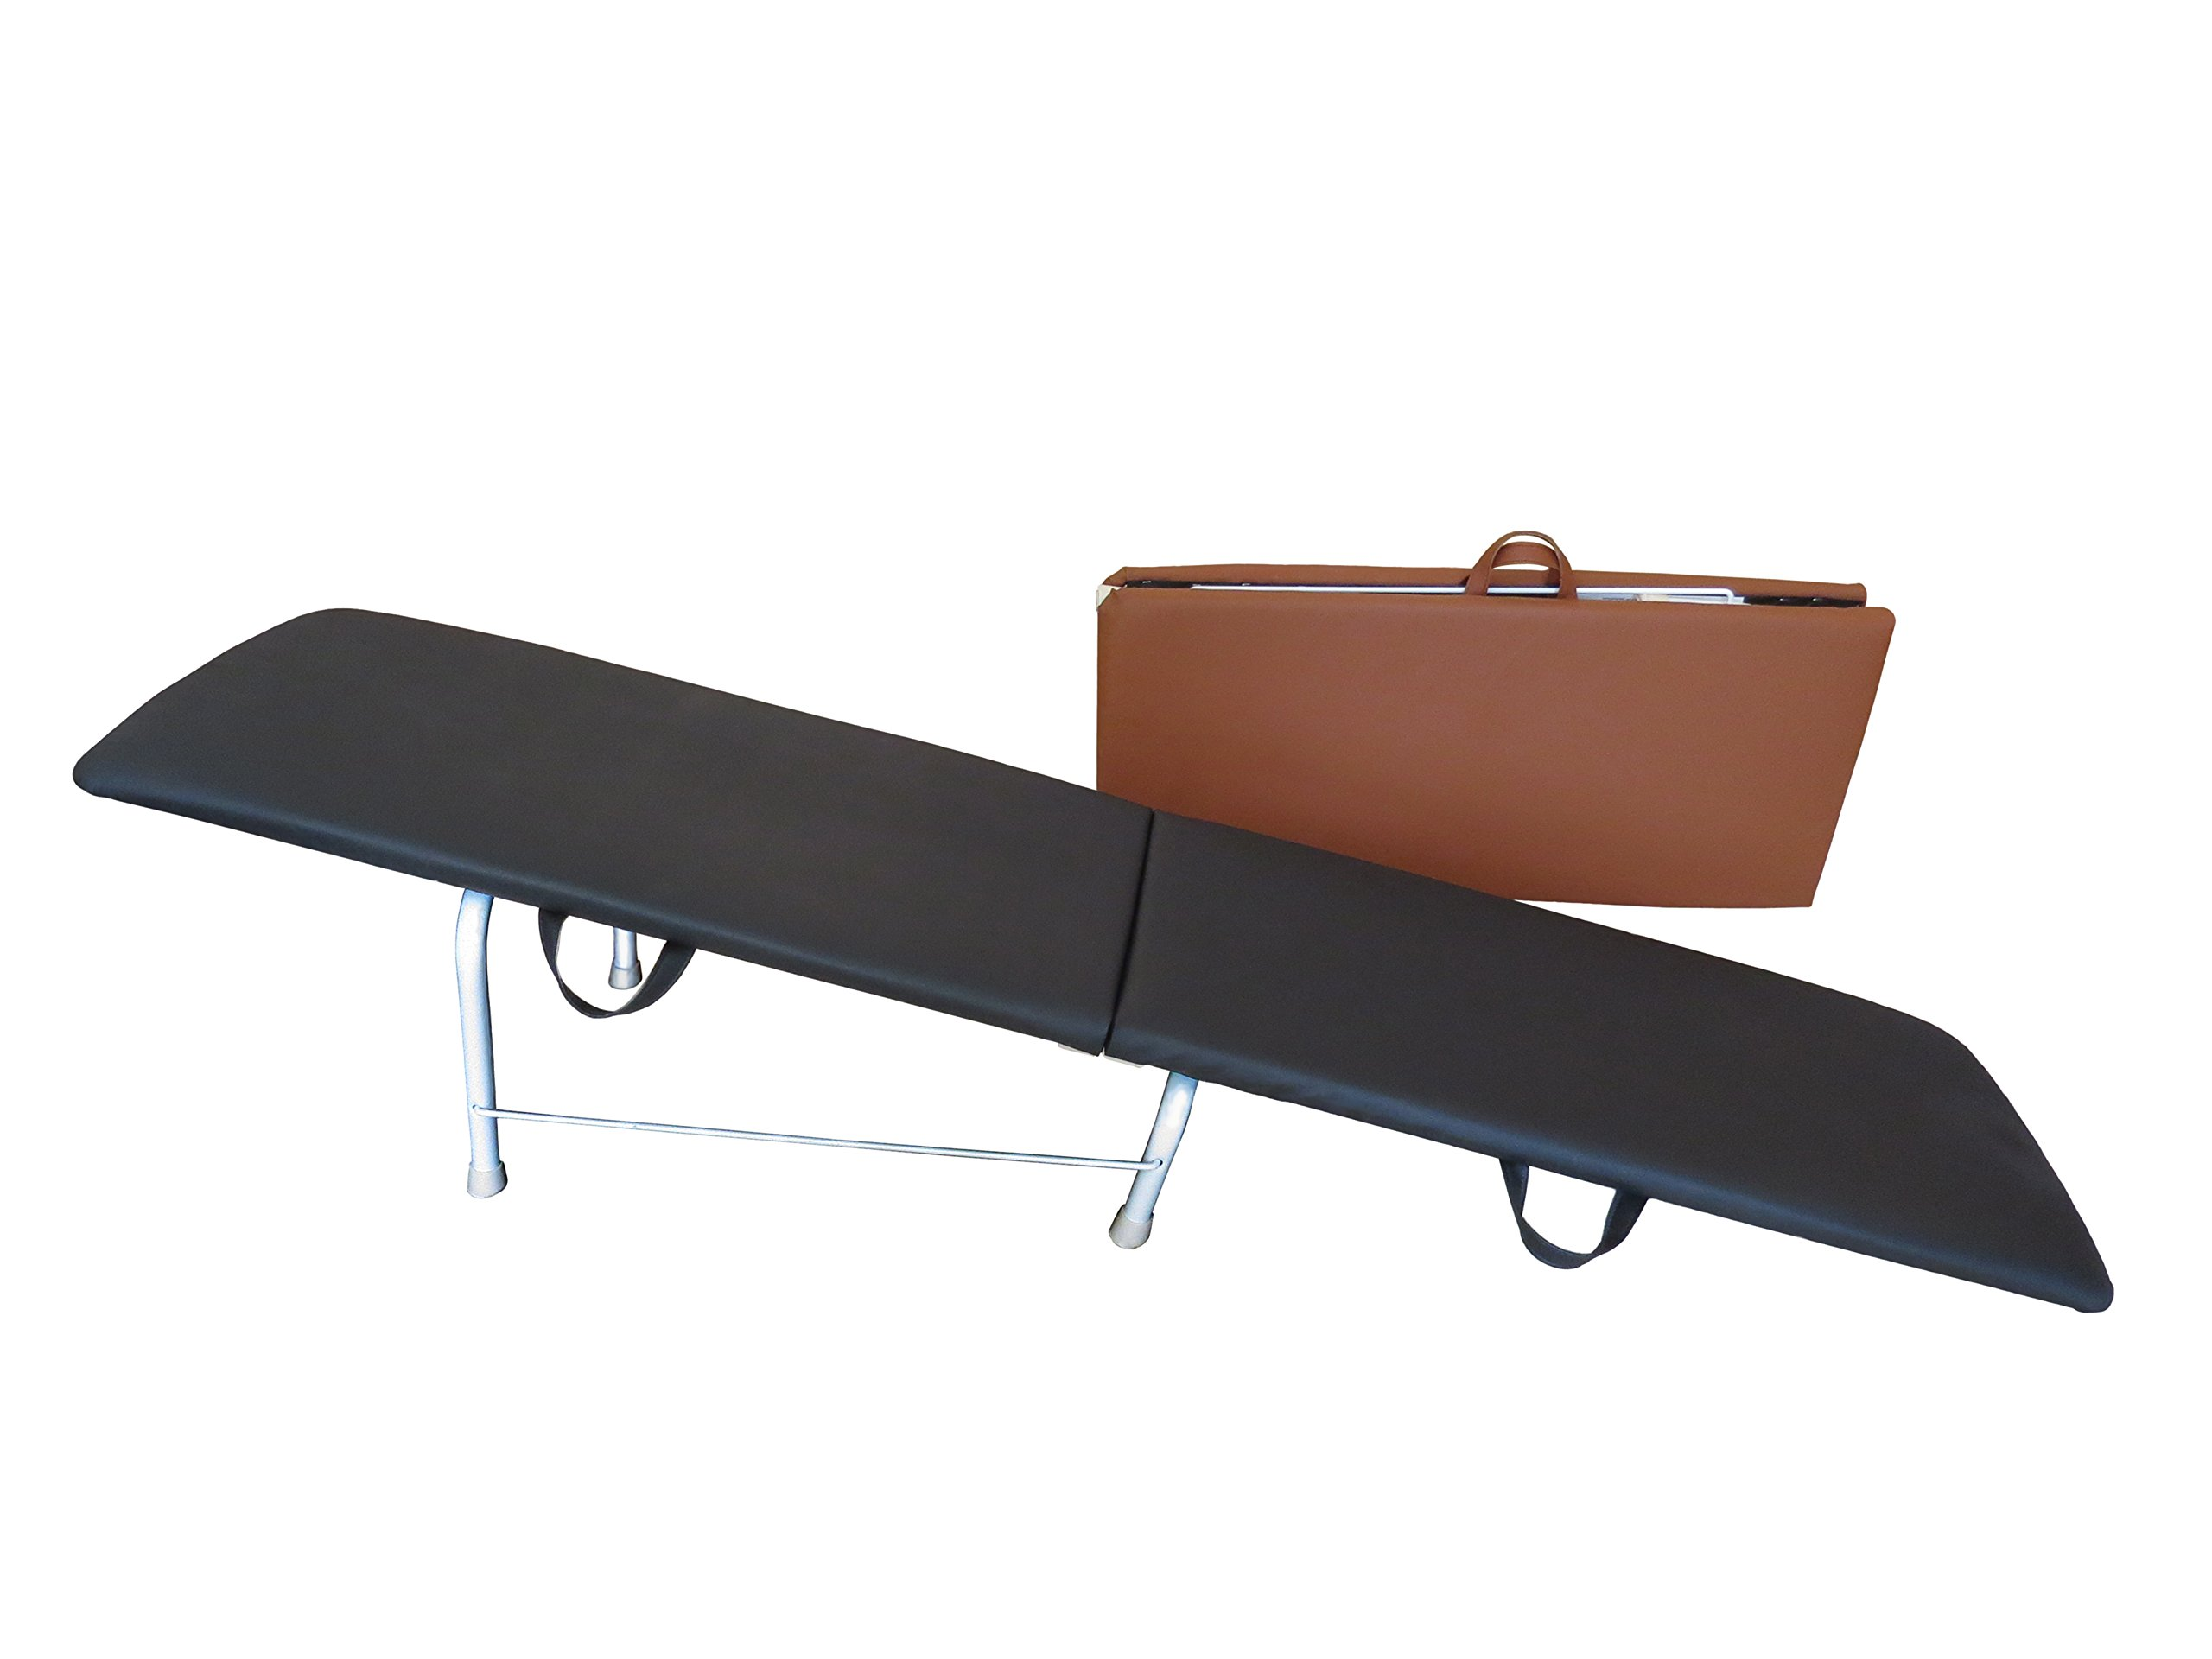 Gravity Pal Traveler Portable Low Angle Inversion Table